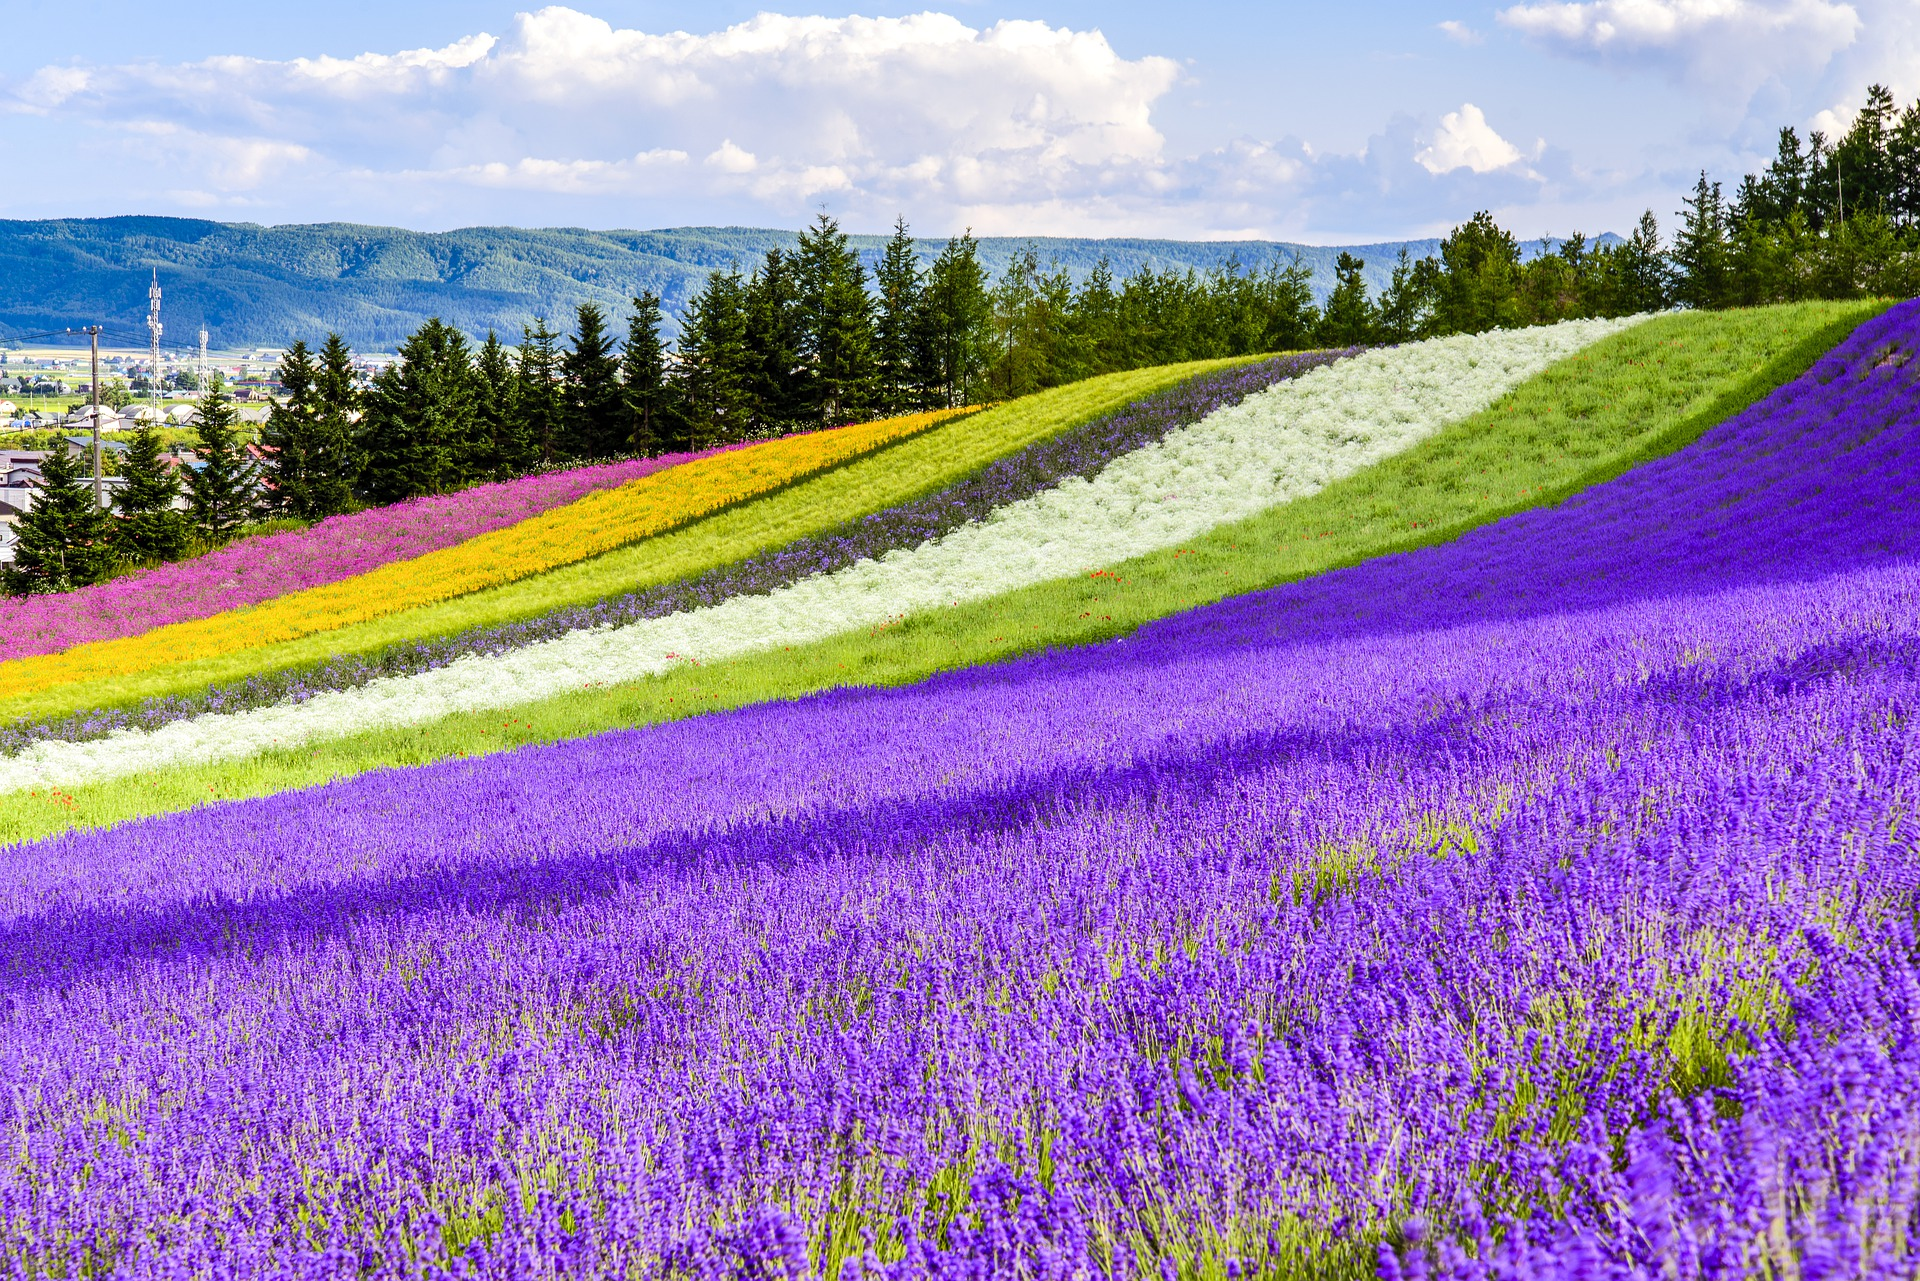 Rainbow Field of Lavenders, Poppies, and French Marigolds